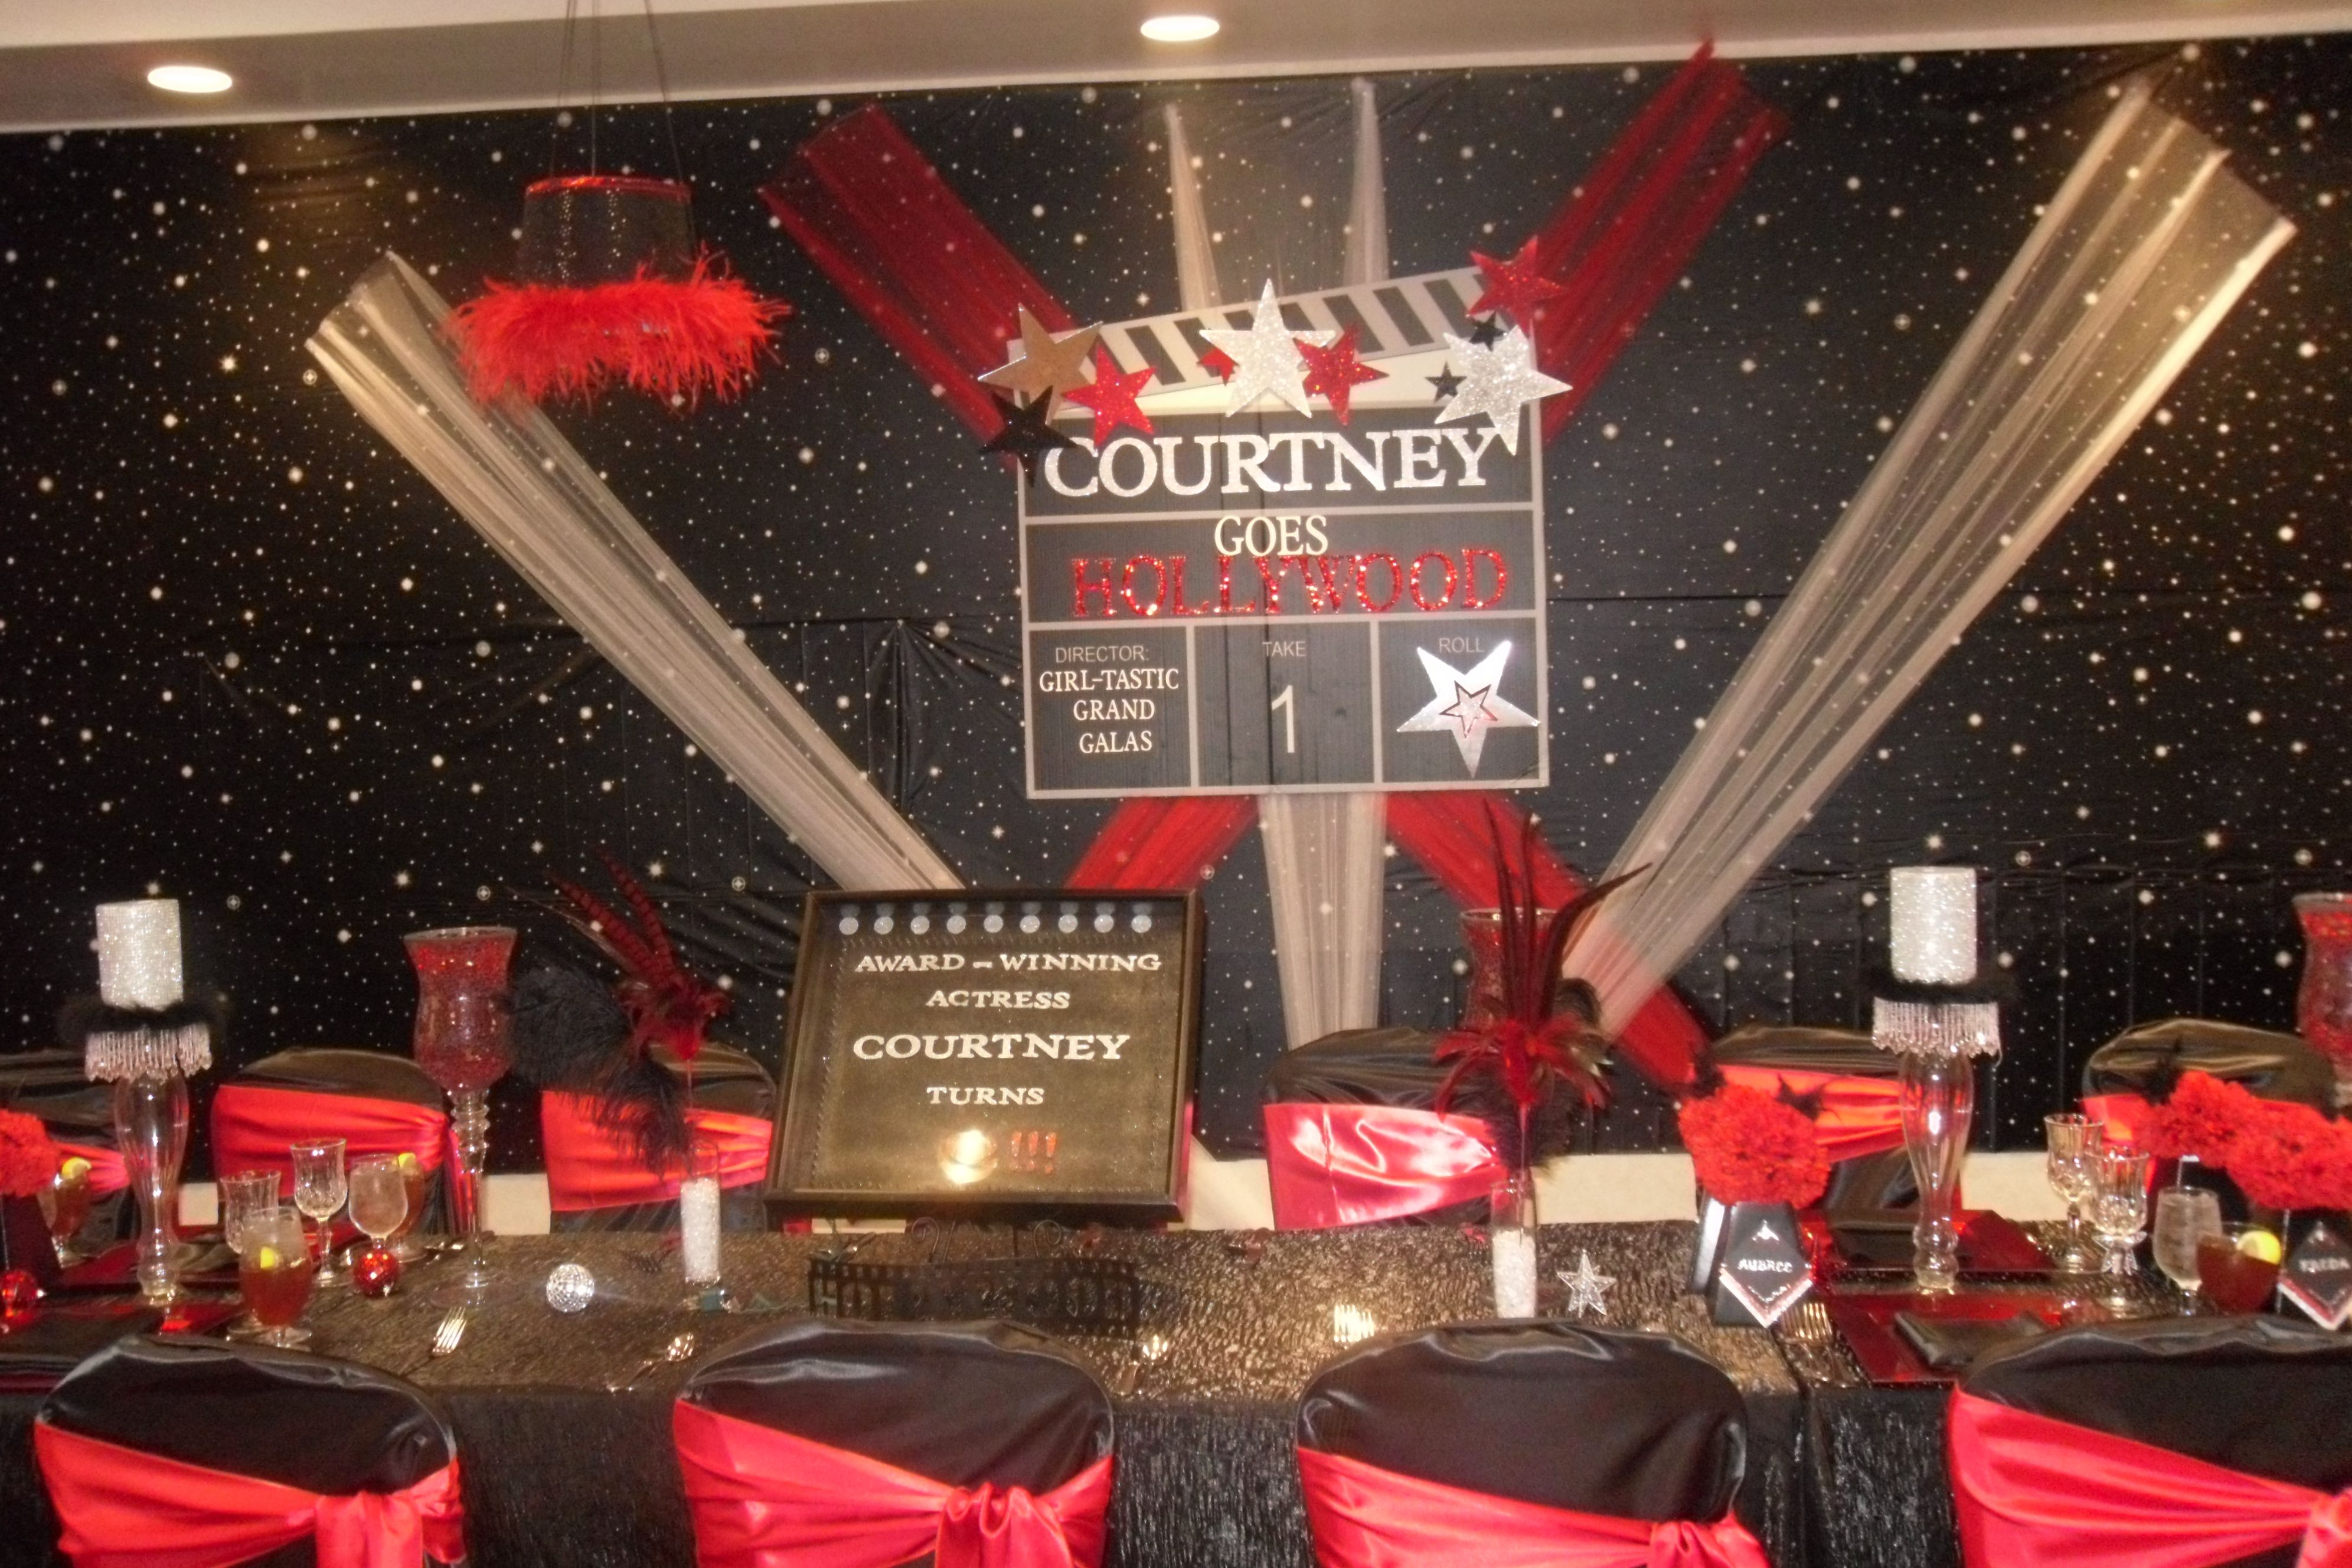 Hollywood Parties Ideas Hollywood Theme Party With Themed Backdrop Children S With Images Hollywood Birthday Parties Hollywood Party Decorations Hollywood Party Theme